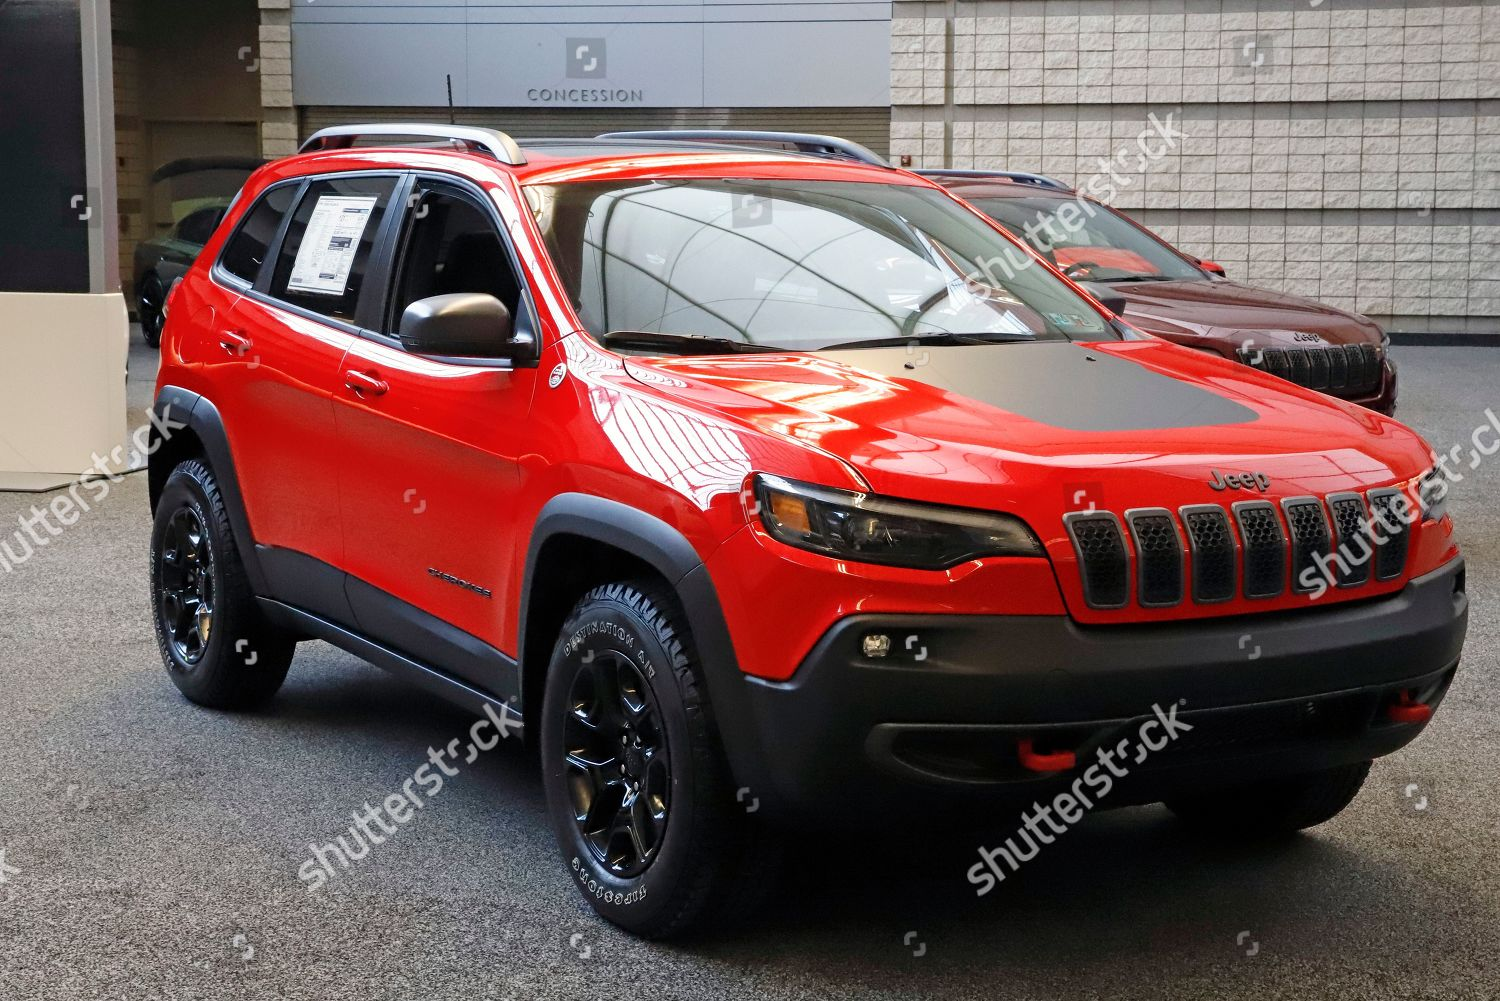 This 2019 Cherokee Trailhawk 4x4 On Display Foto Editorial Imagem De Banco Shutterstock